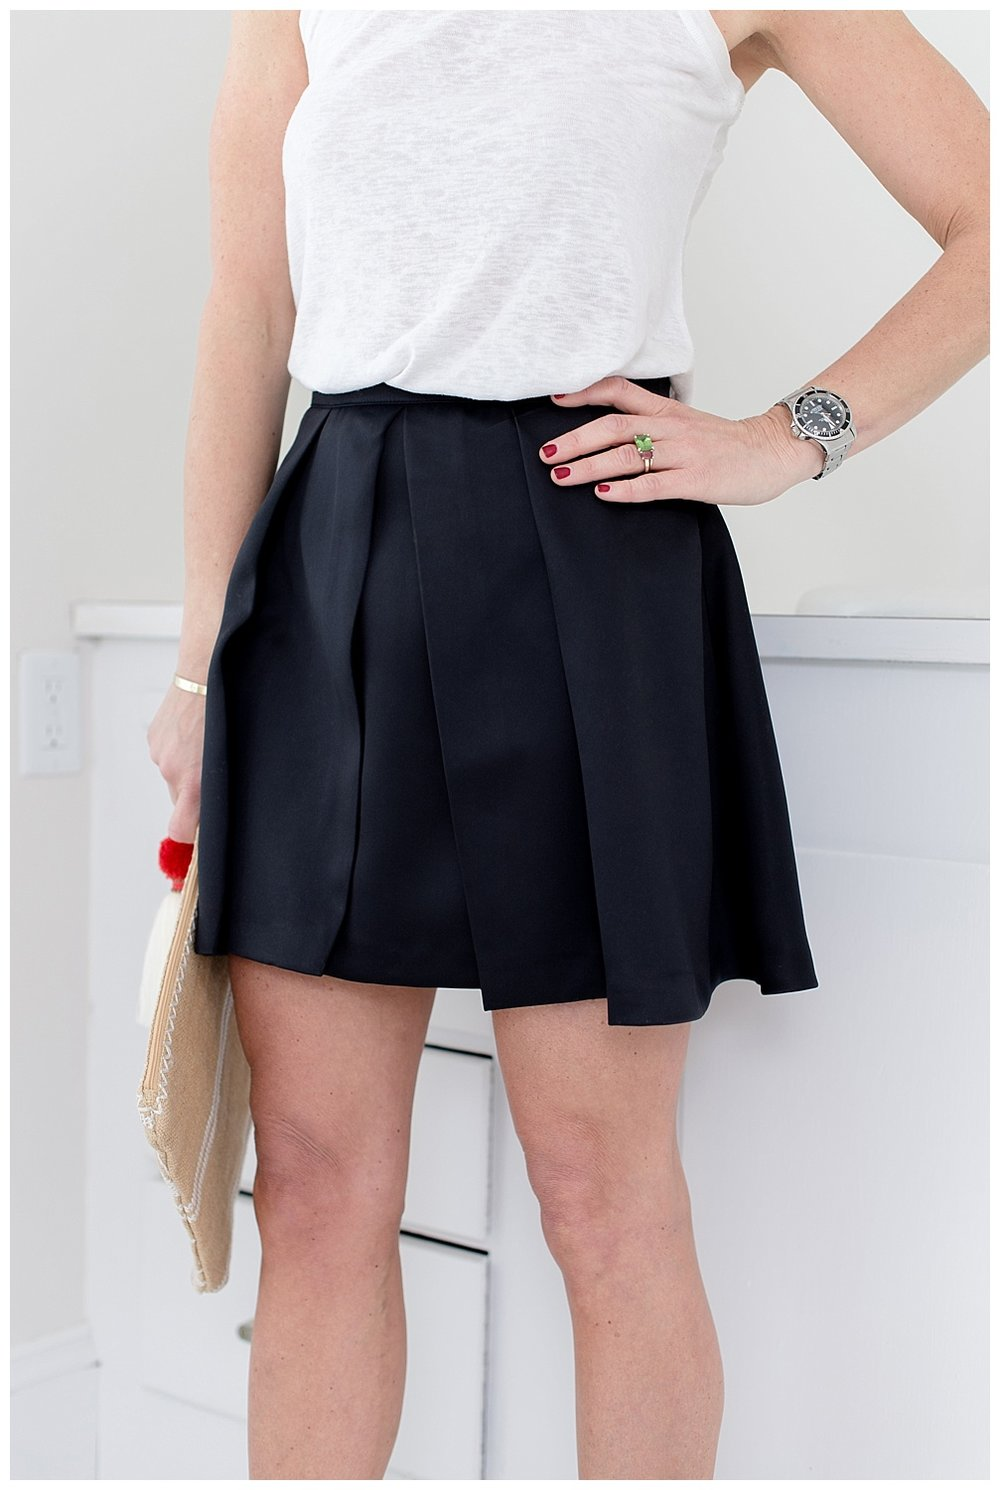 Black skirt - Tobi_1199.jpg